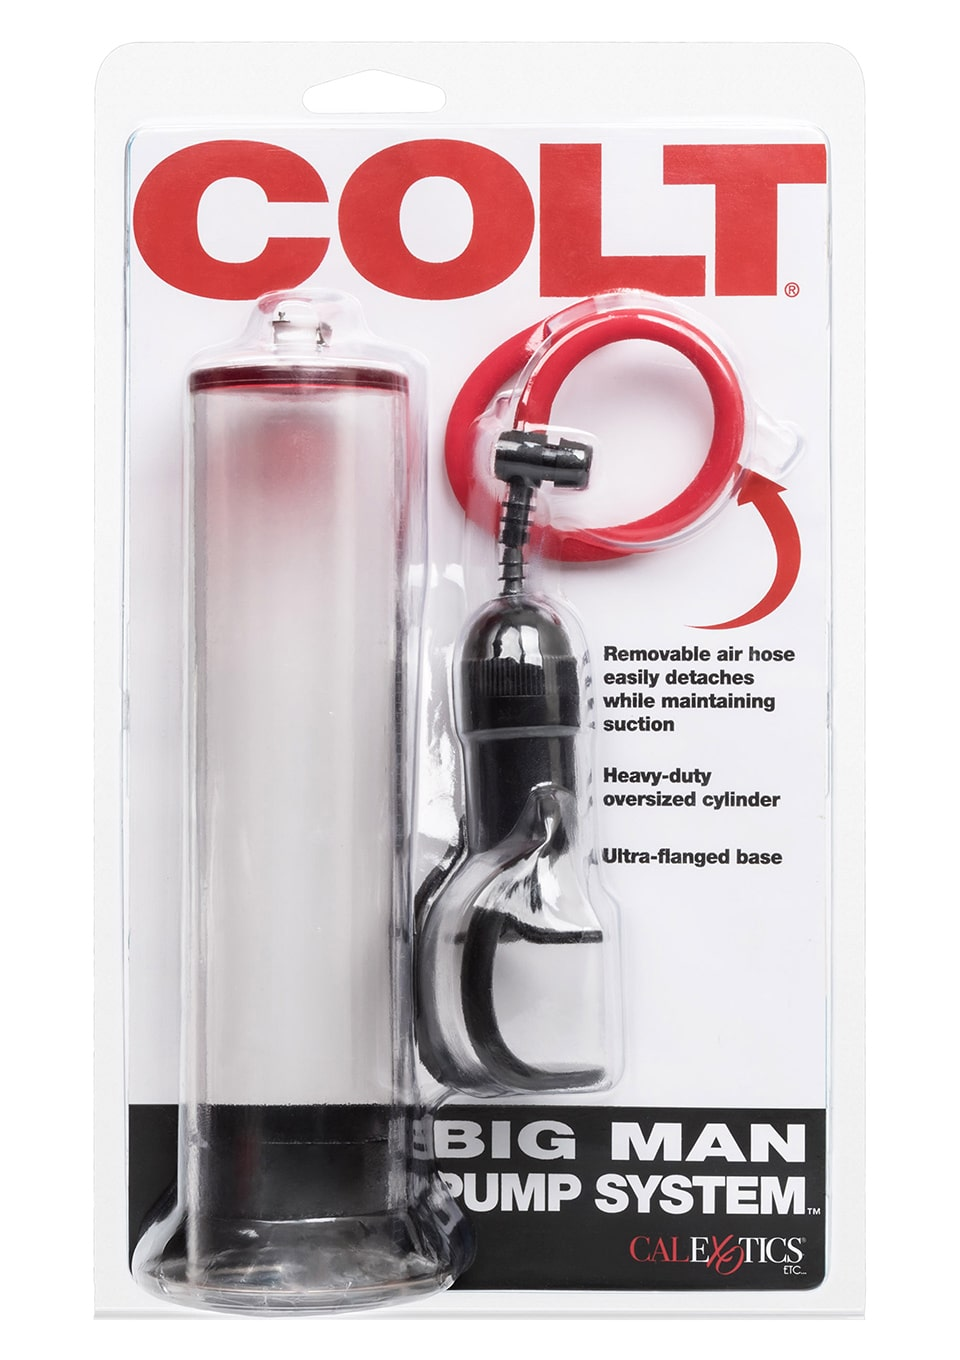 COLT BIG MAN PUMP SYSTEM | Better Sex, Sex Enhancement, Sex Toys, Adult Toys | My Sex Shop